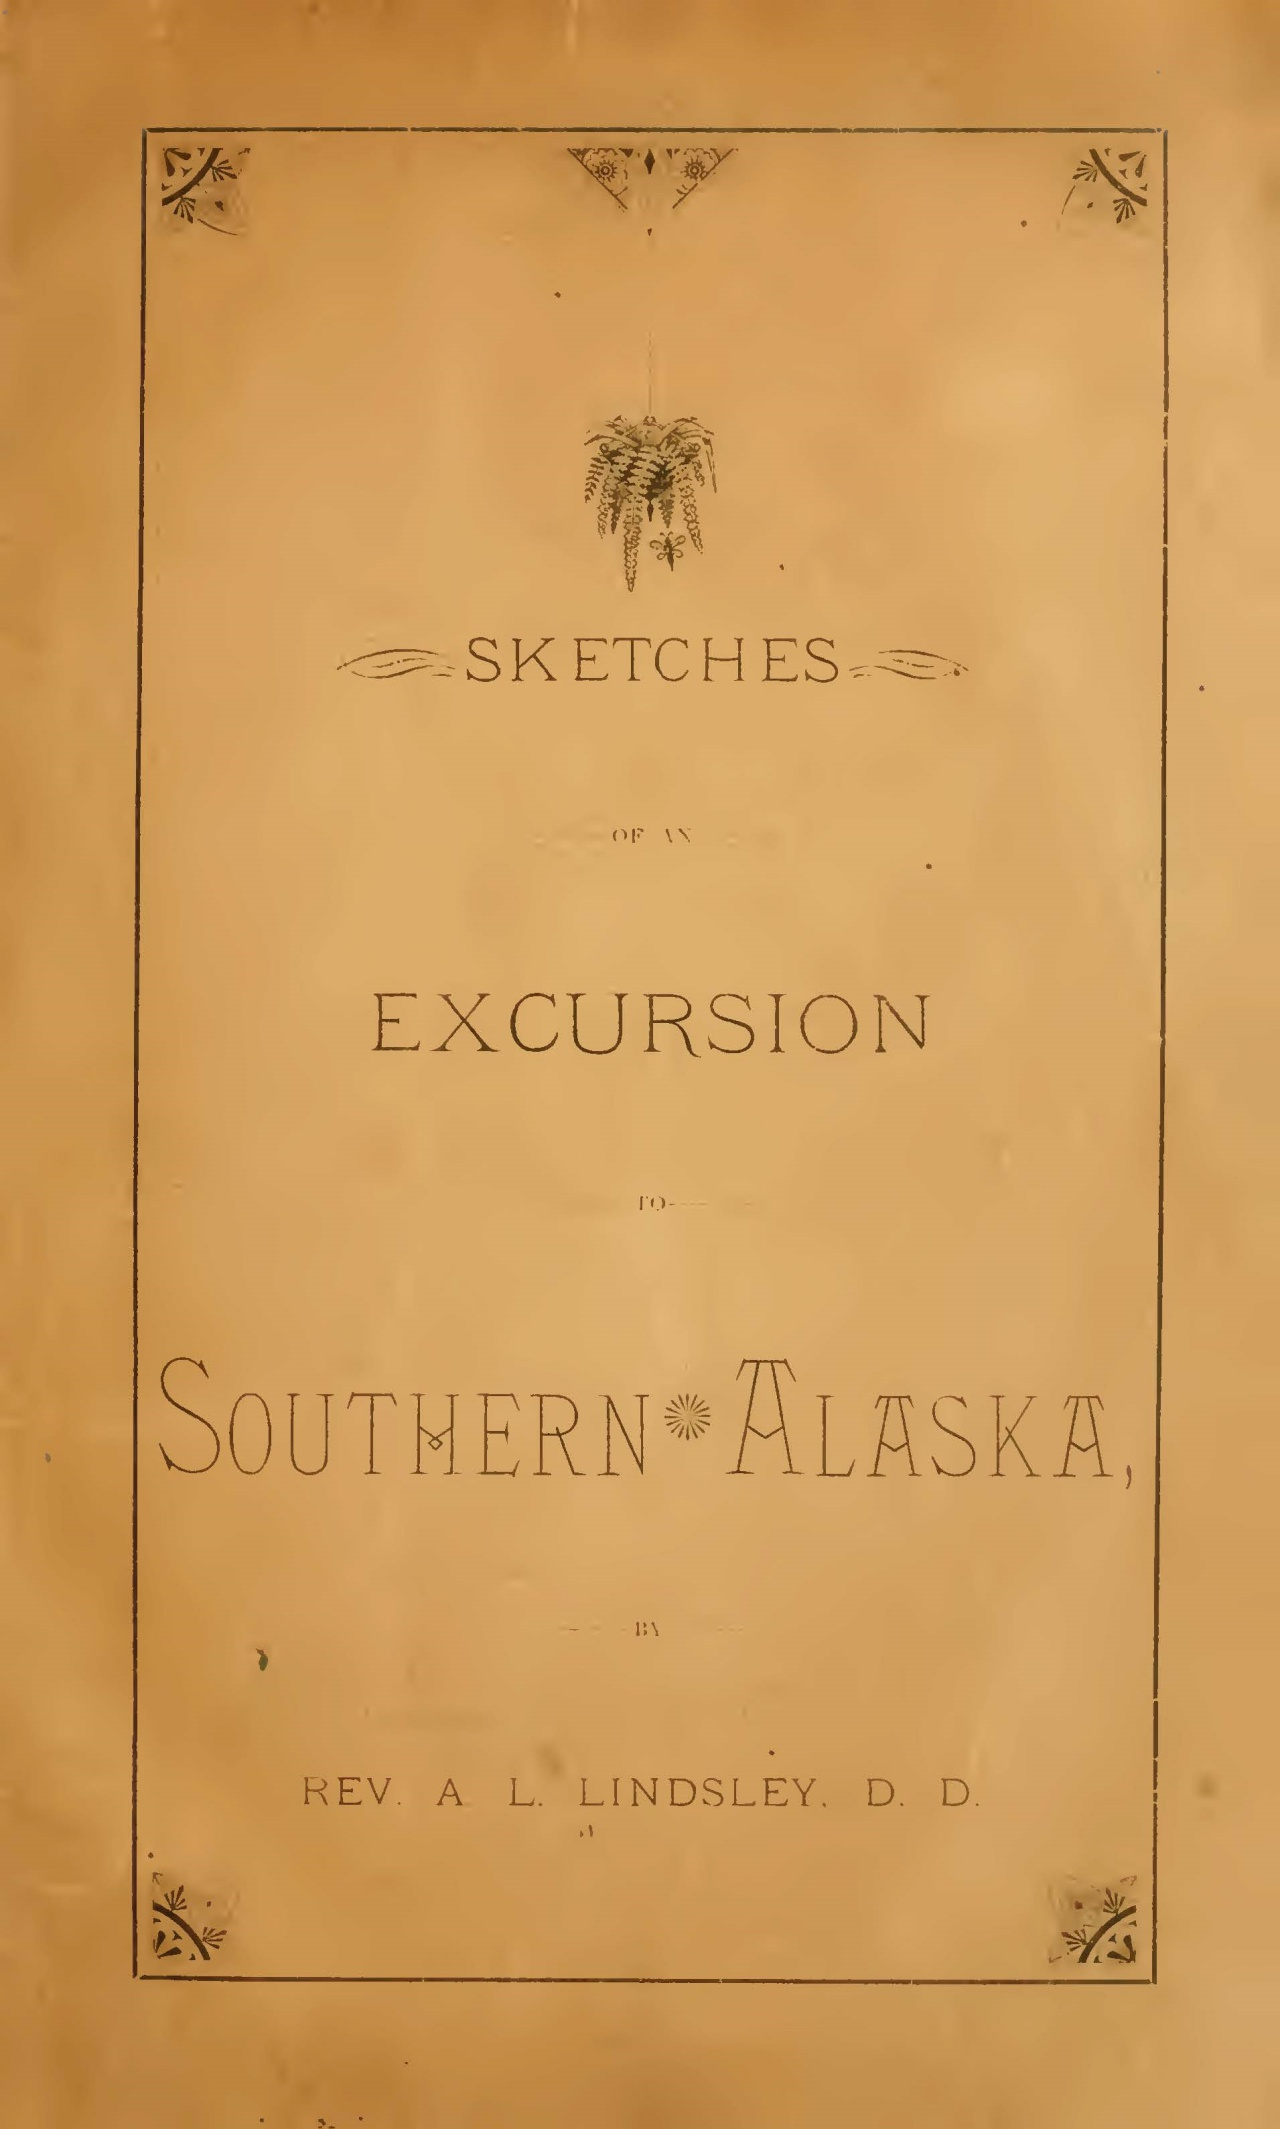 Lindsley, Aaron Ladner, Sketches of an Excursion to Southern Alaska Title Page.jpg